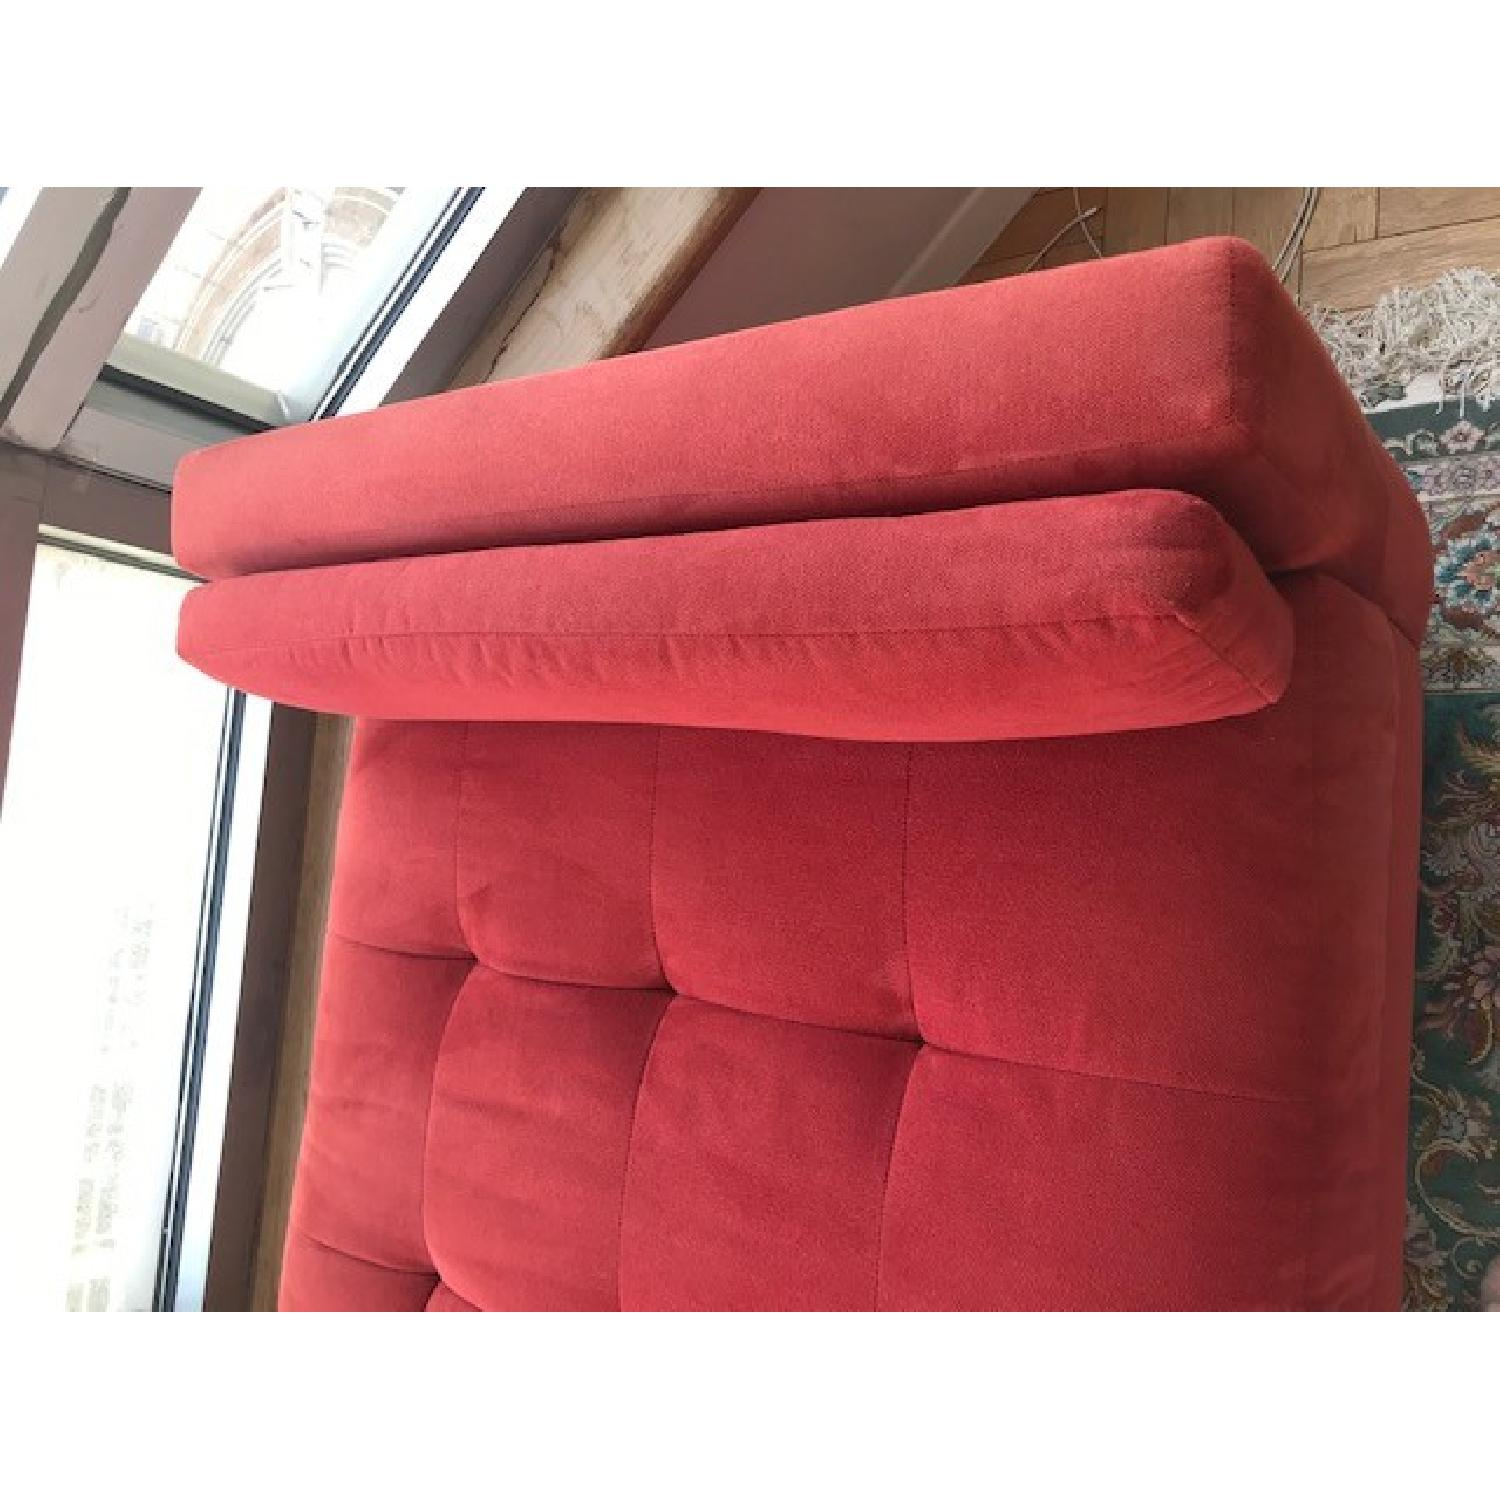 Macy's Max Home Amalfi Red Microfiber Chaise/Daybed - image-4